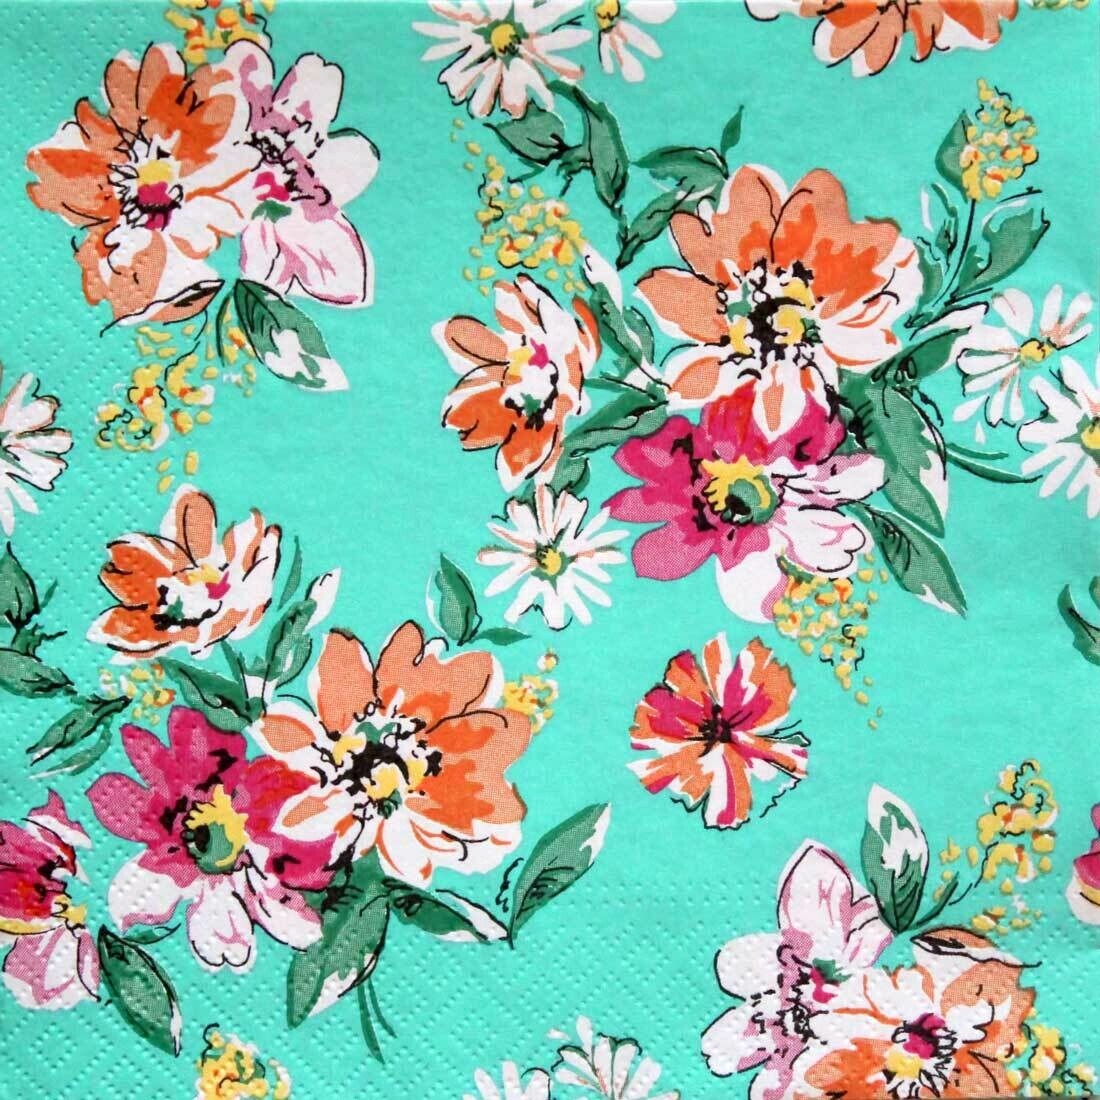 Decoupage Paper Napkins - Floral - Flower Meadow Pattern Turquoise (1 Sheet)